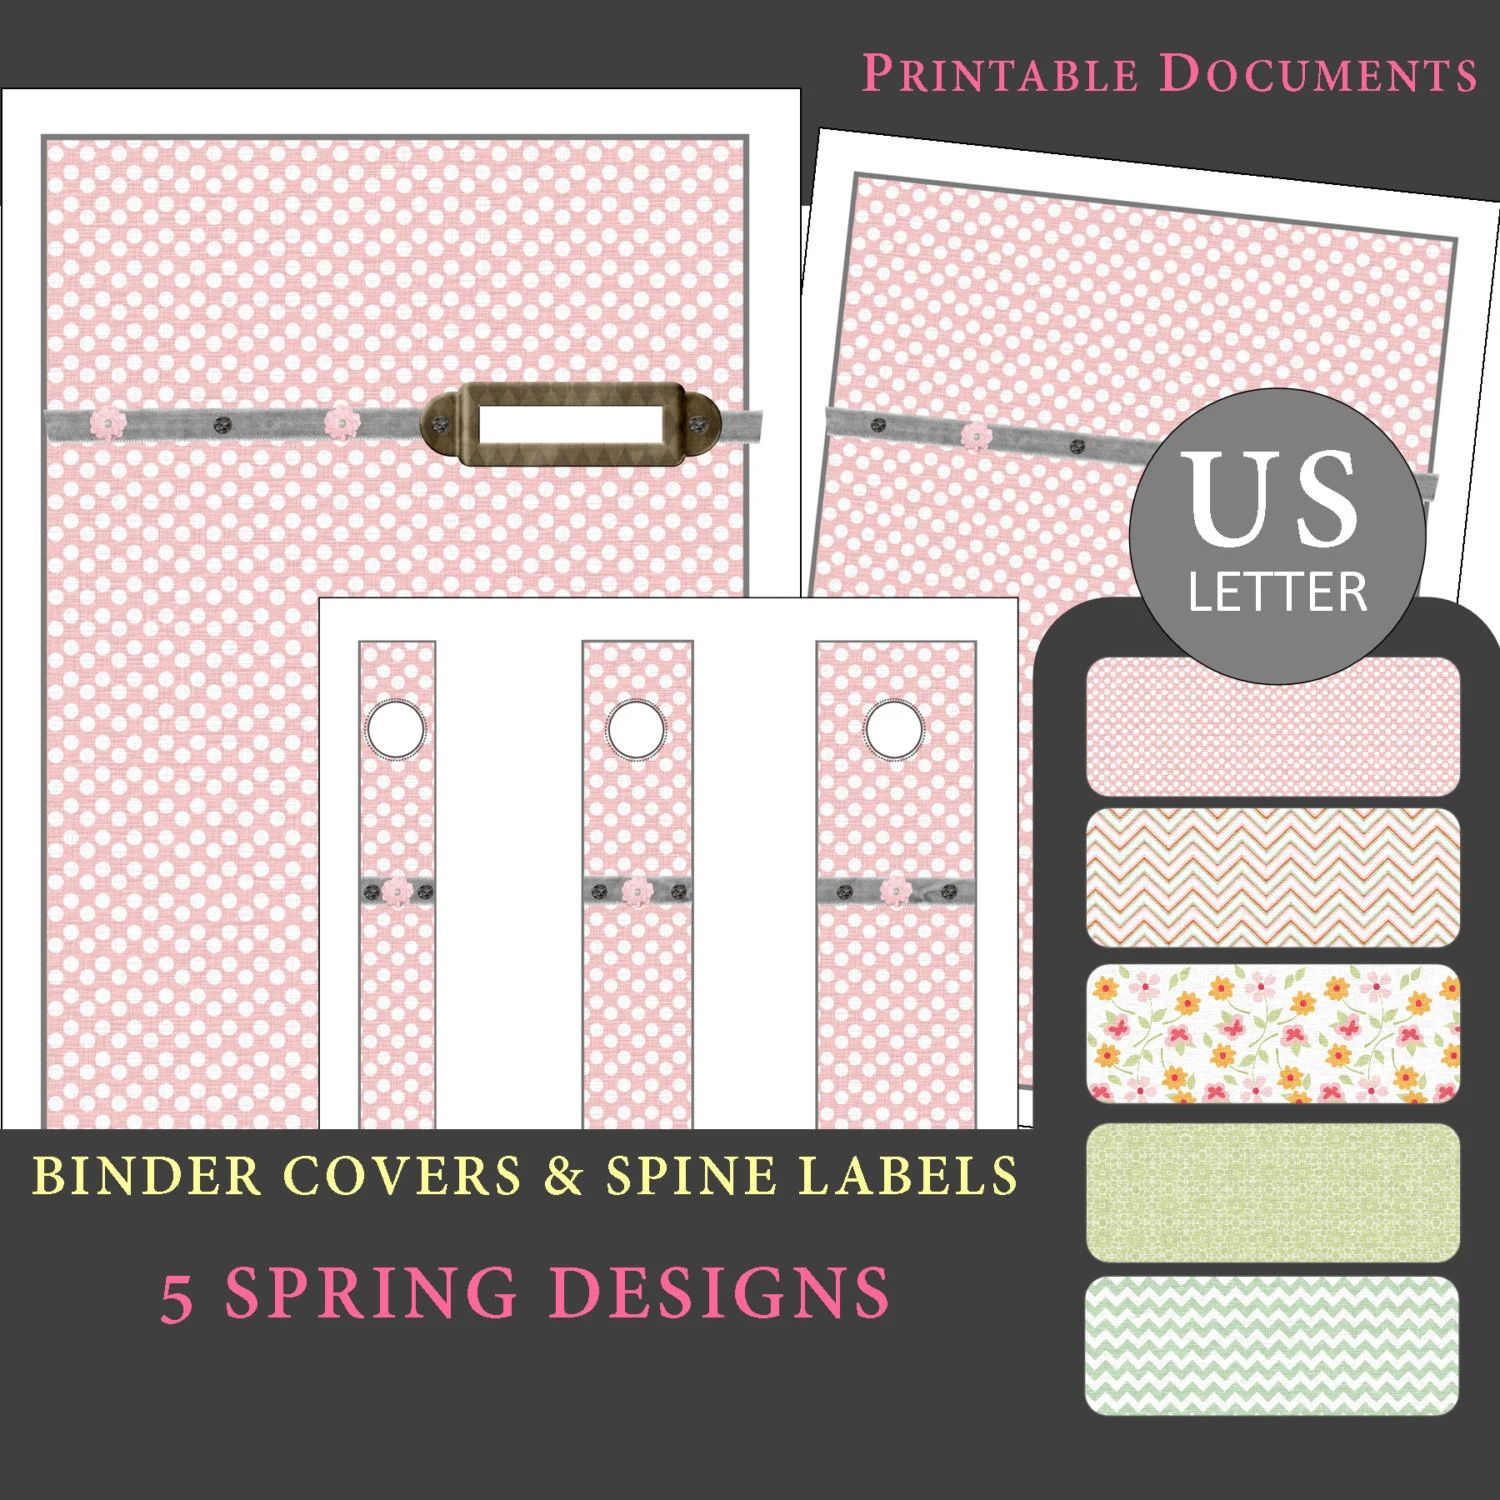 binder spine covers